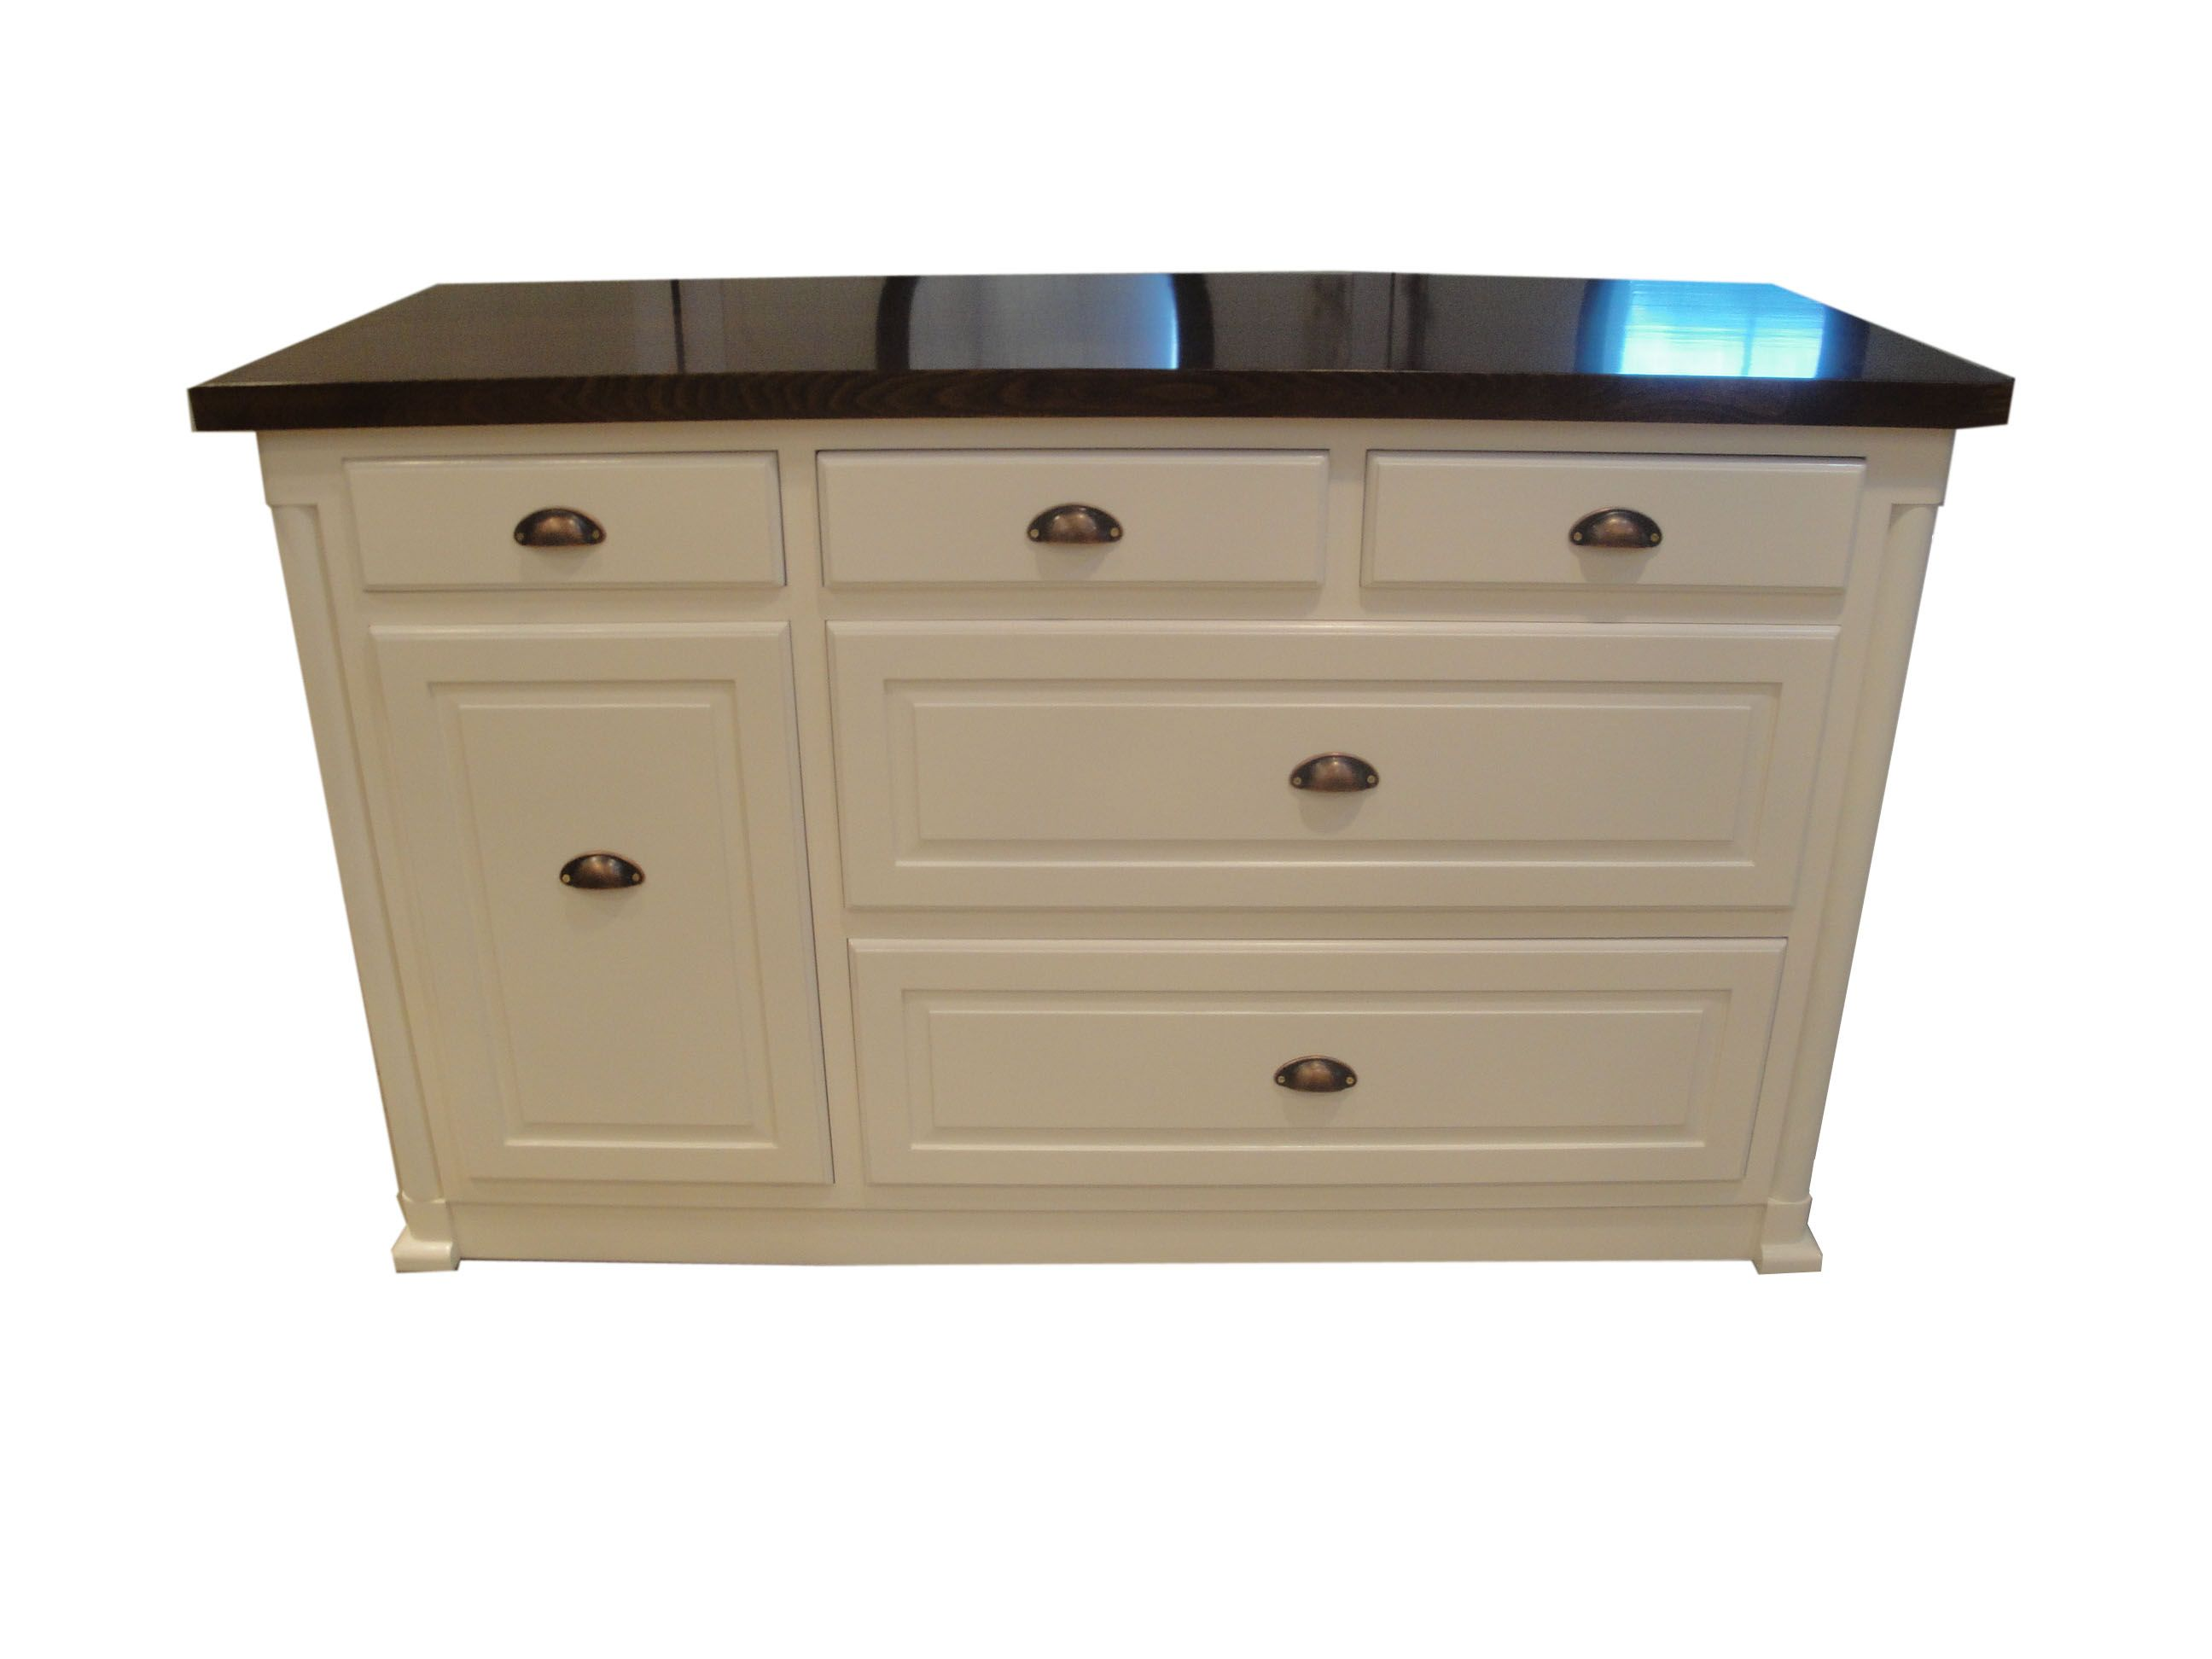 60 kitchen island renovation costs nj details about x24 cream with butcher block top